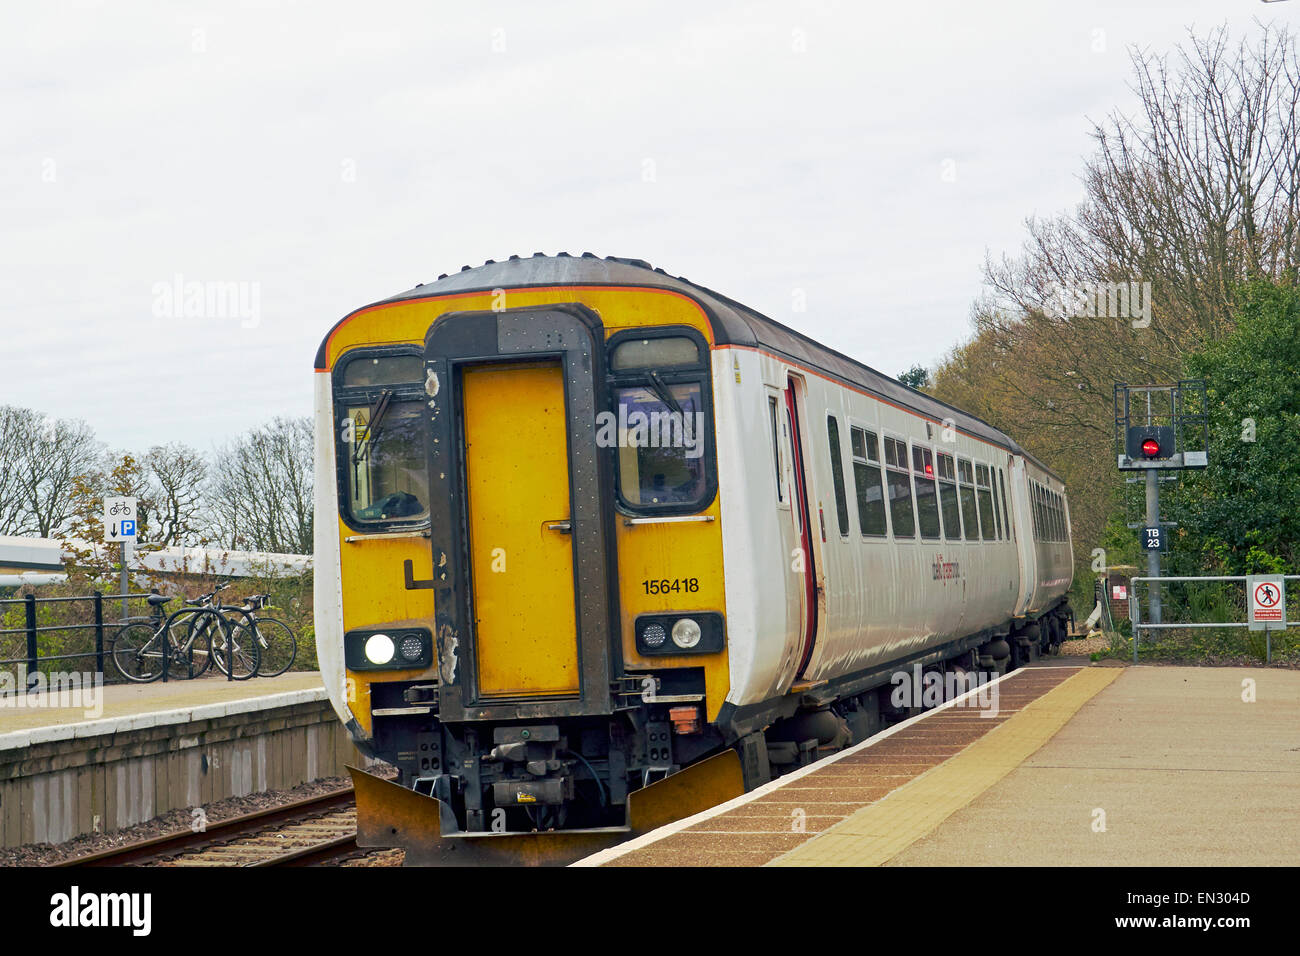 Abellio Greater Anglia Class 156 Super Sprinter diesel multiple-unit train (DMU) at North Walsham on branch line - Stock Image